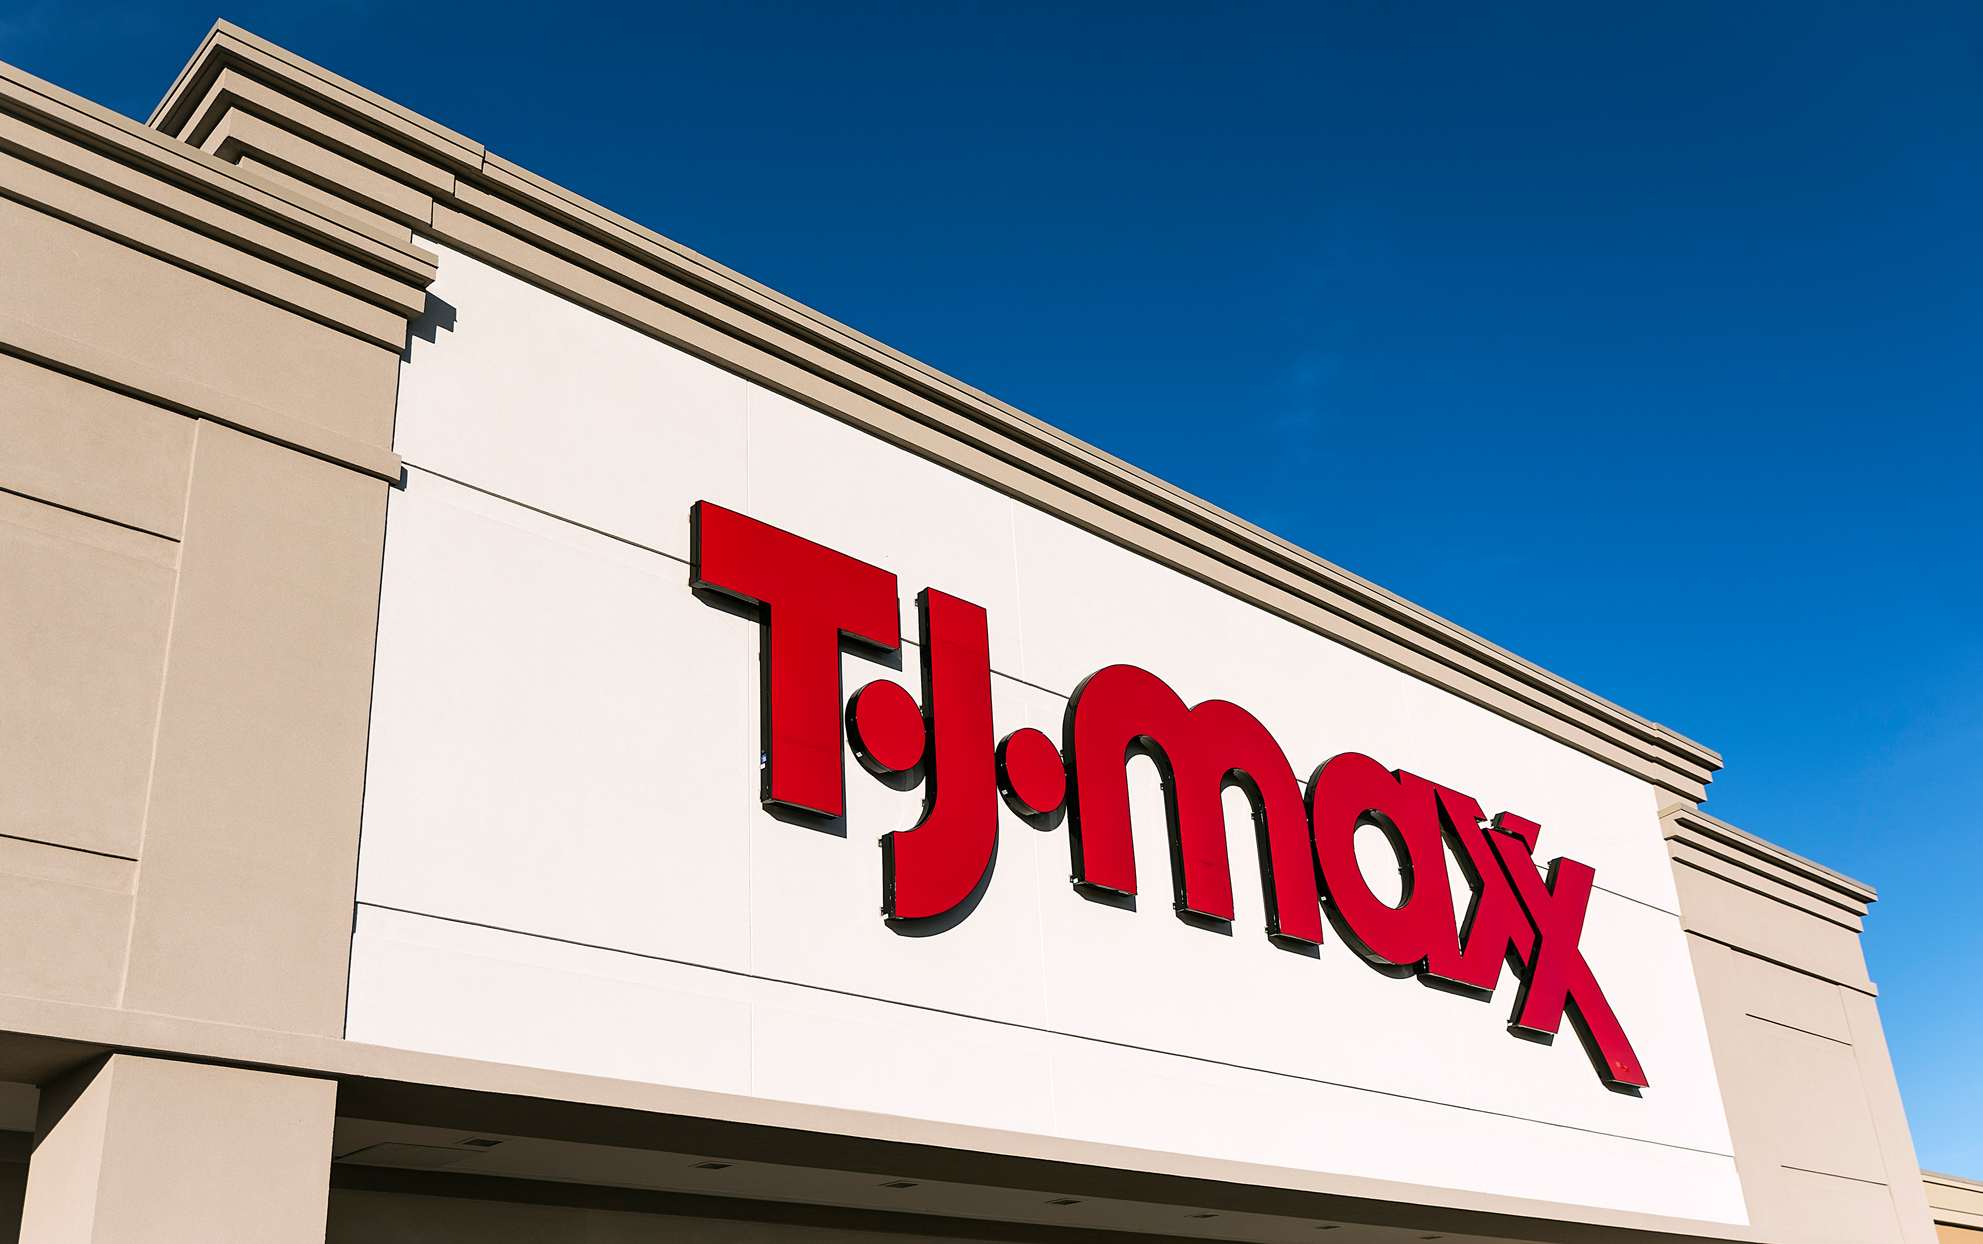 TJ Maxx storefront with blue sky